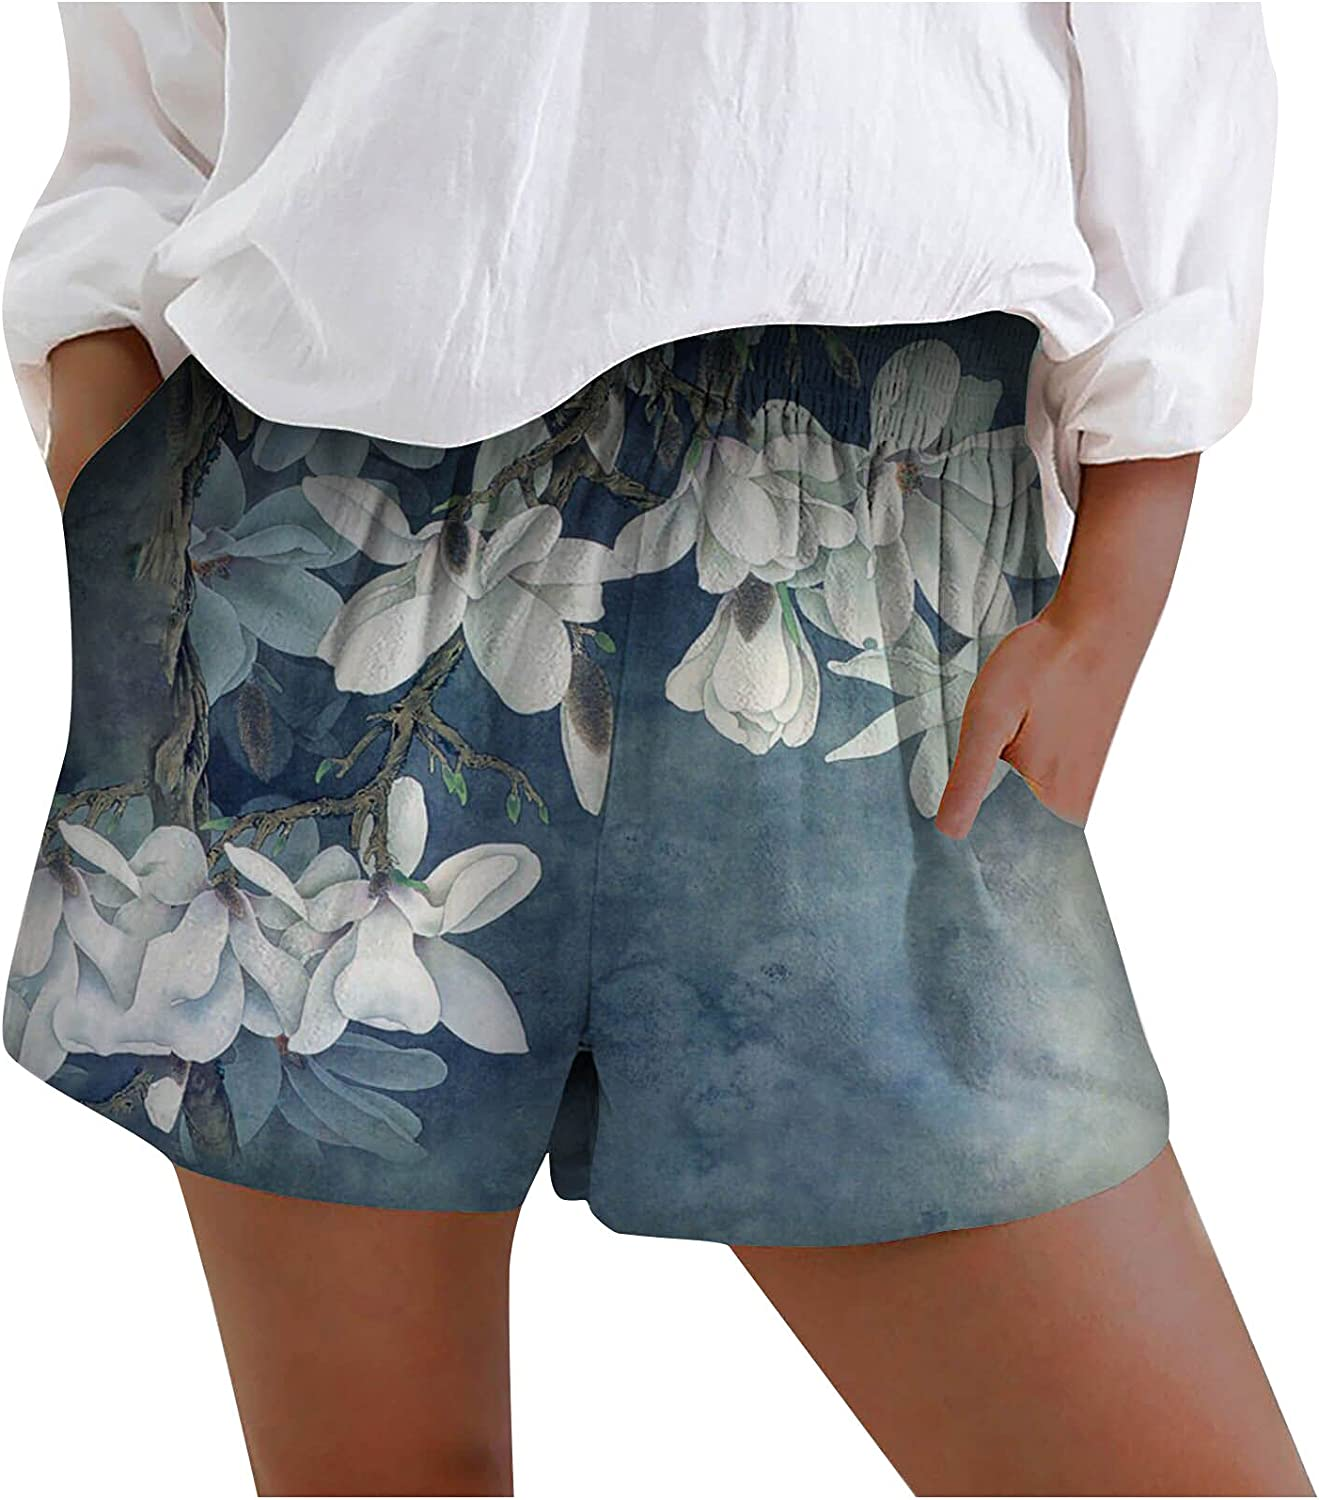 Women's Shorts Summer Loose Wide Leg Comfy Shorts Floral American Flag Print Lounge Pants Casual Activewear